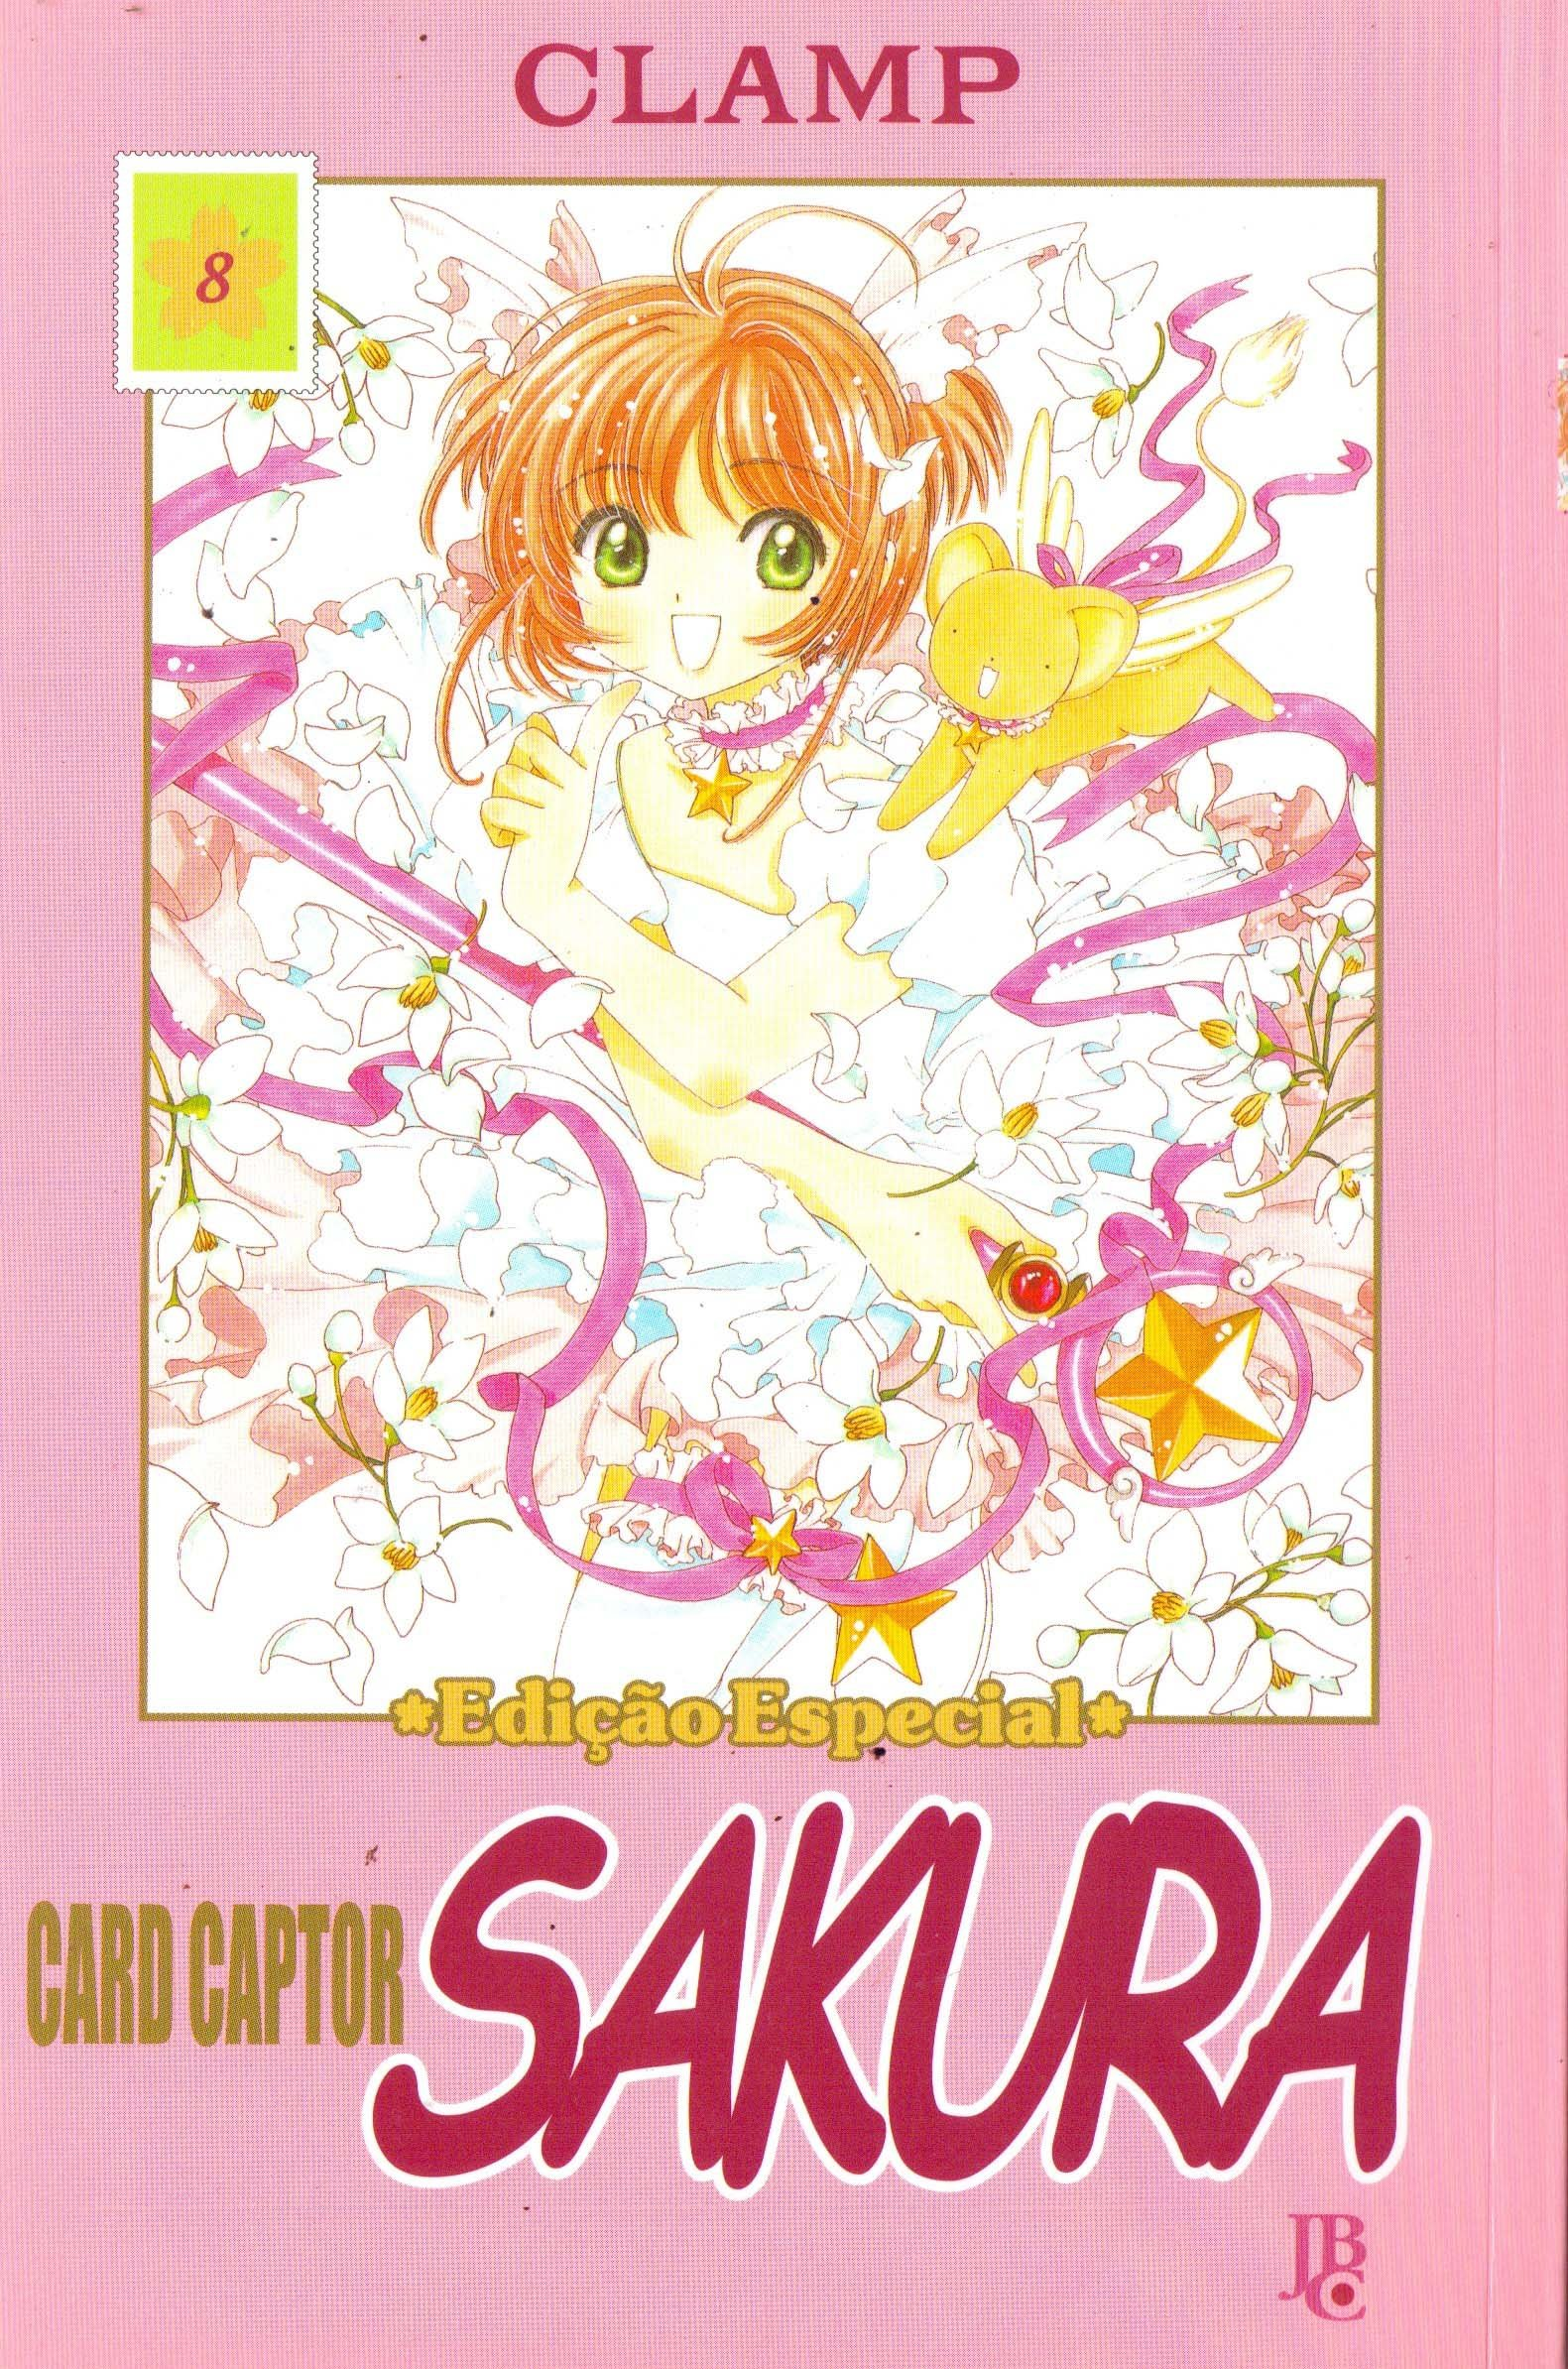 Card Captor Sakura- Volume 8: Amazon.es: Vários Autores: Libros